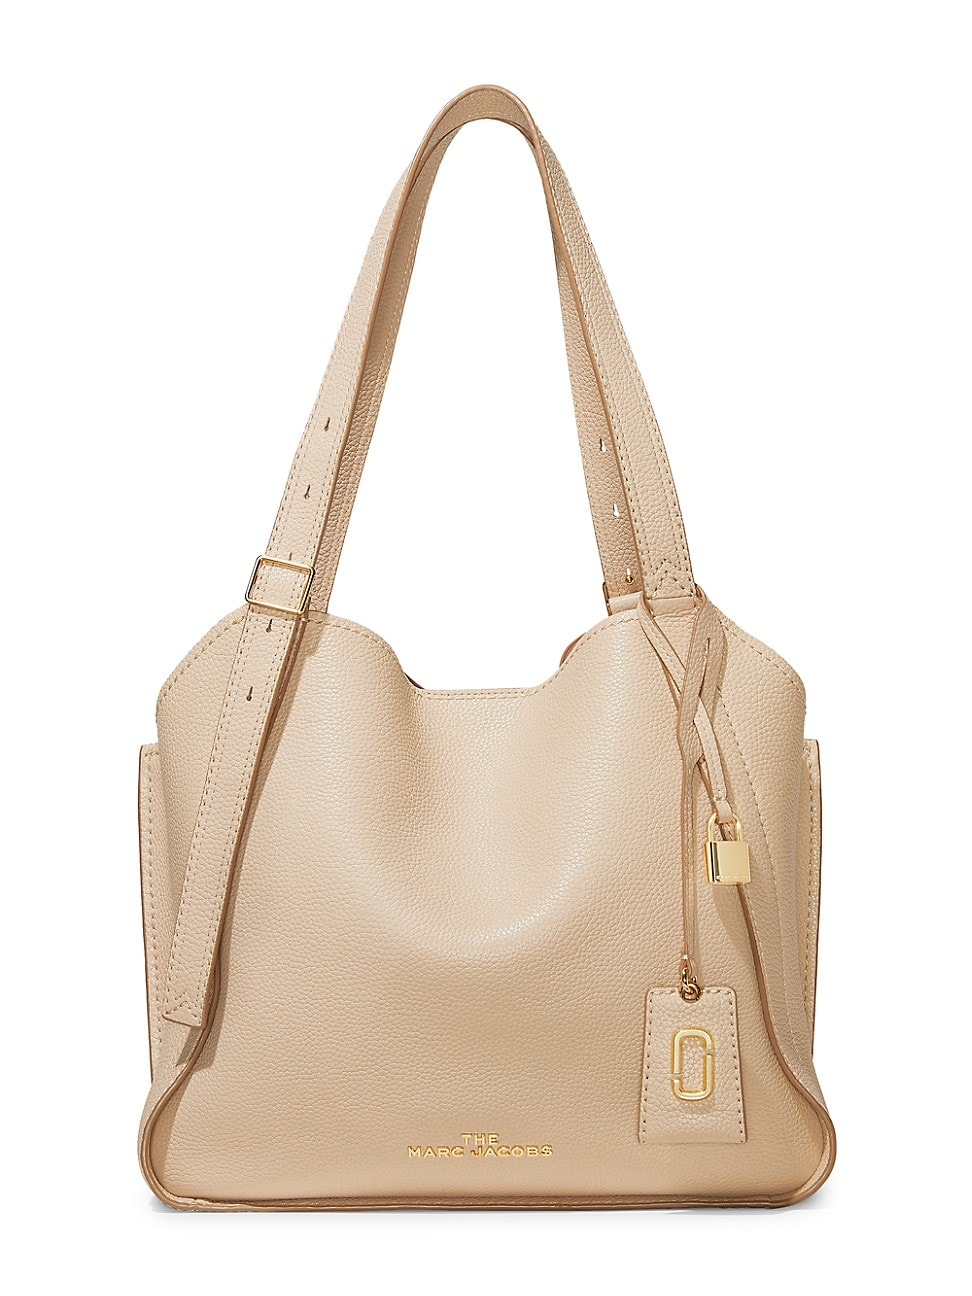 The Marc Jacobs WOMEN'S THE DIRECTOR LEATHER TOTE